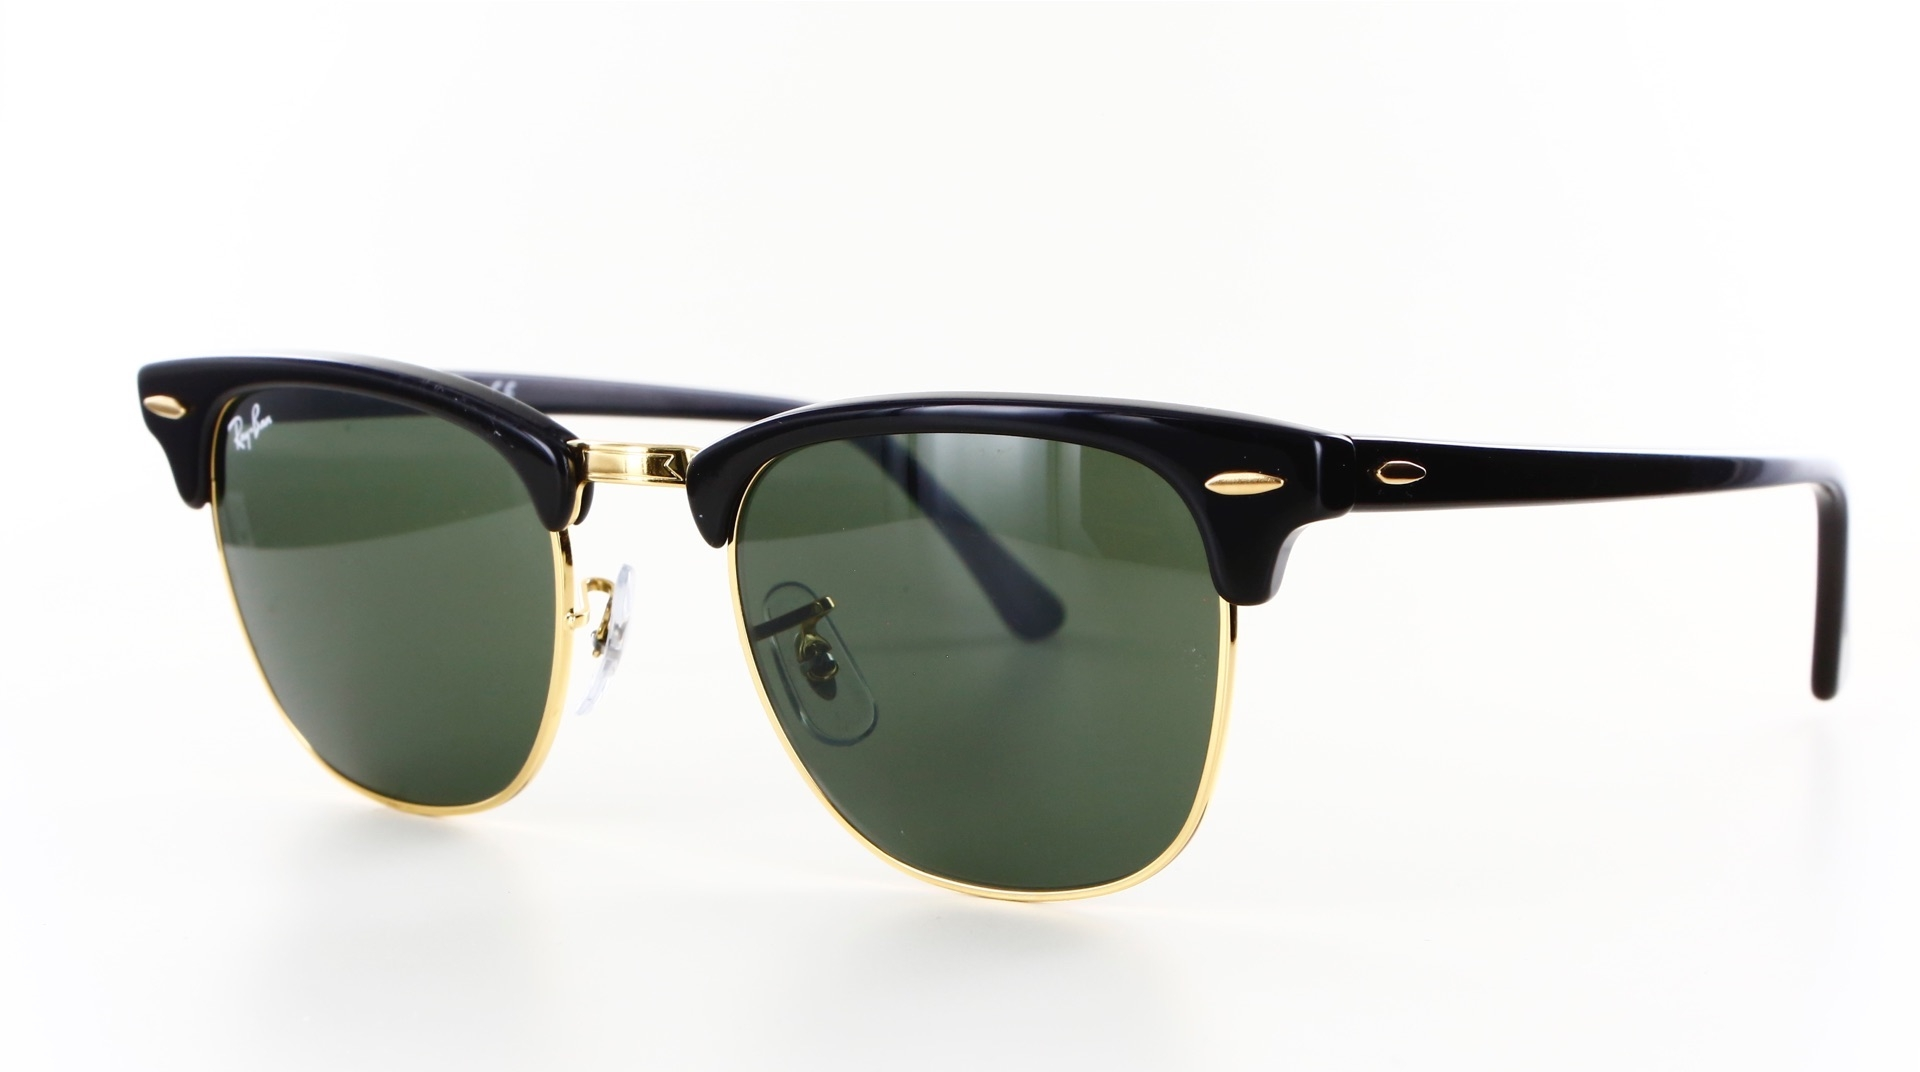 Ray-Ban - ref: 58819